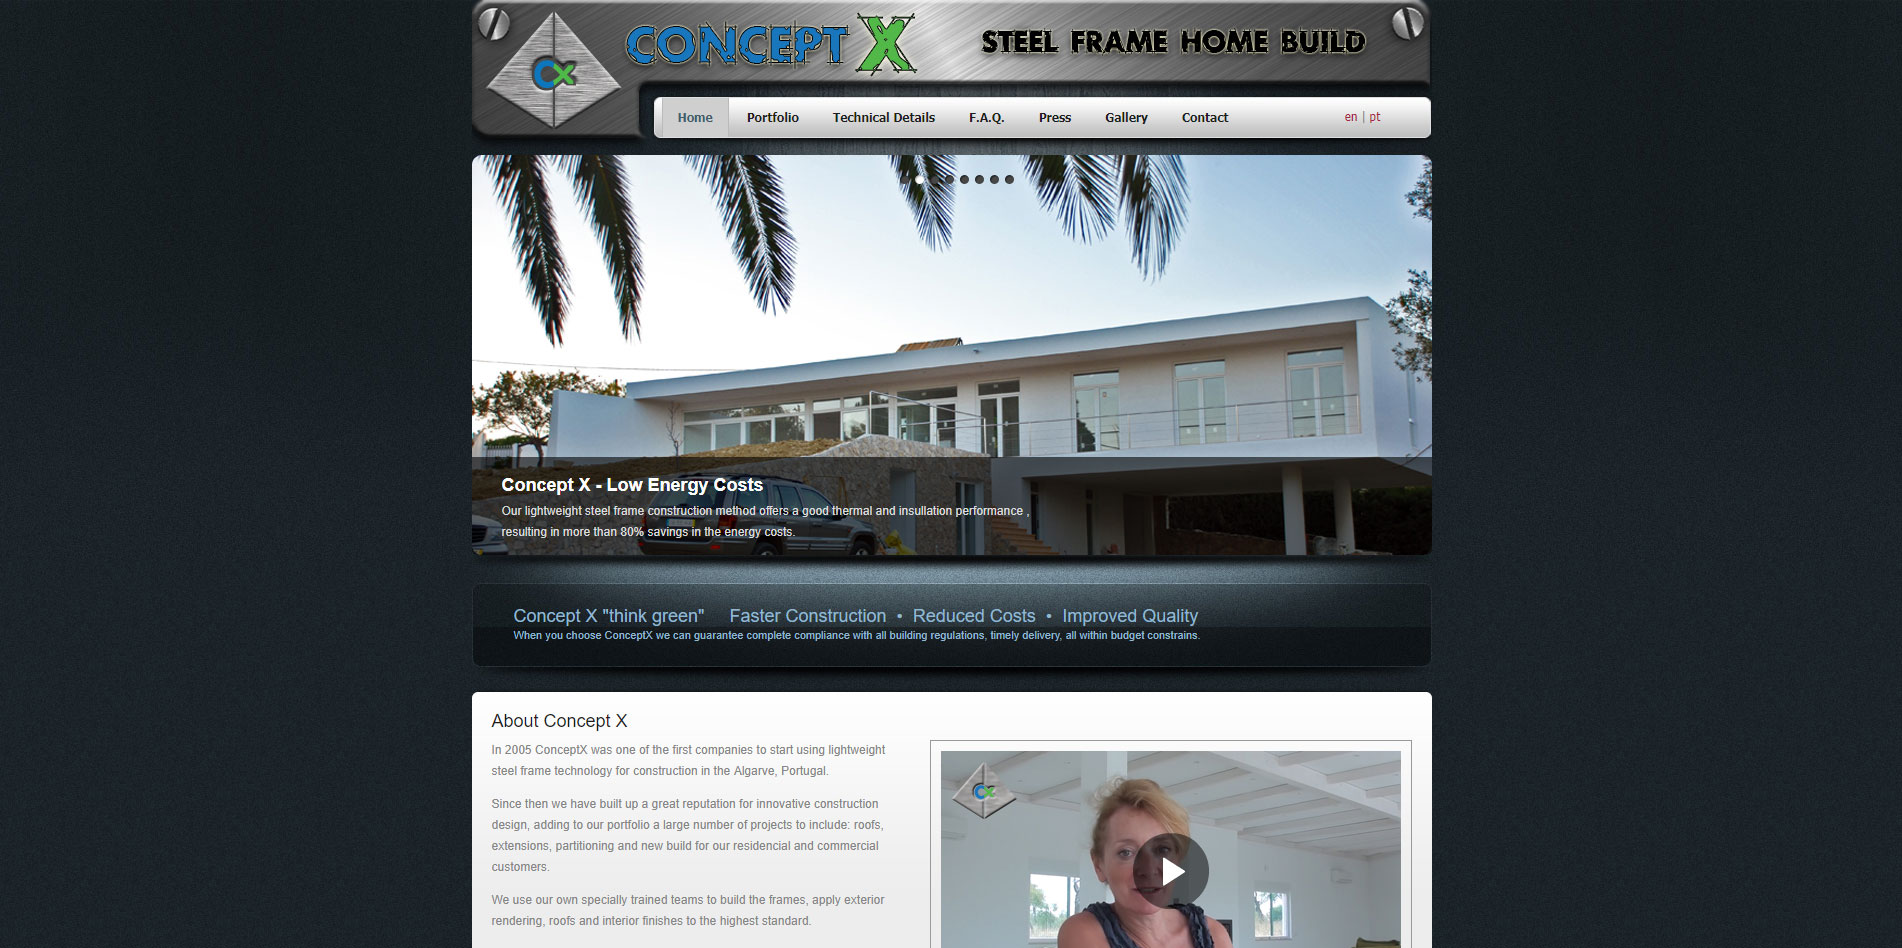 Conceptx website homepage